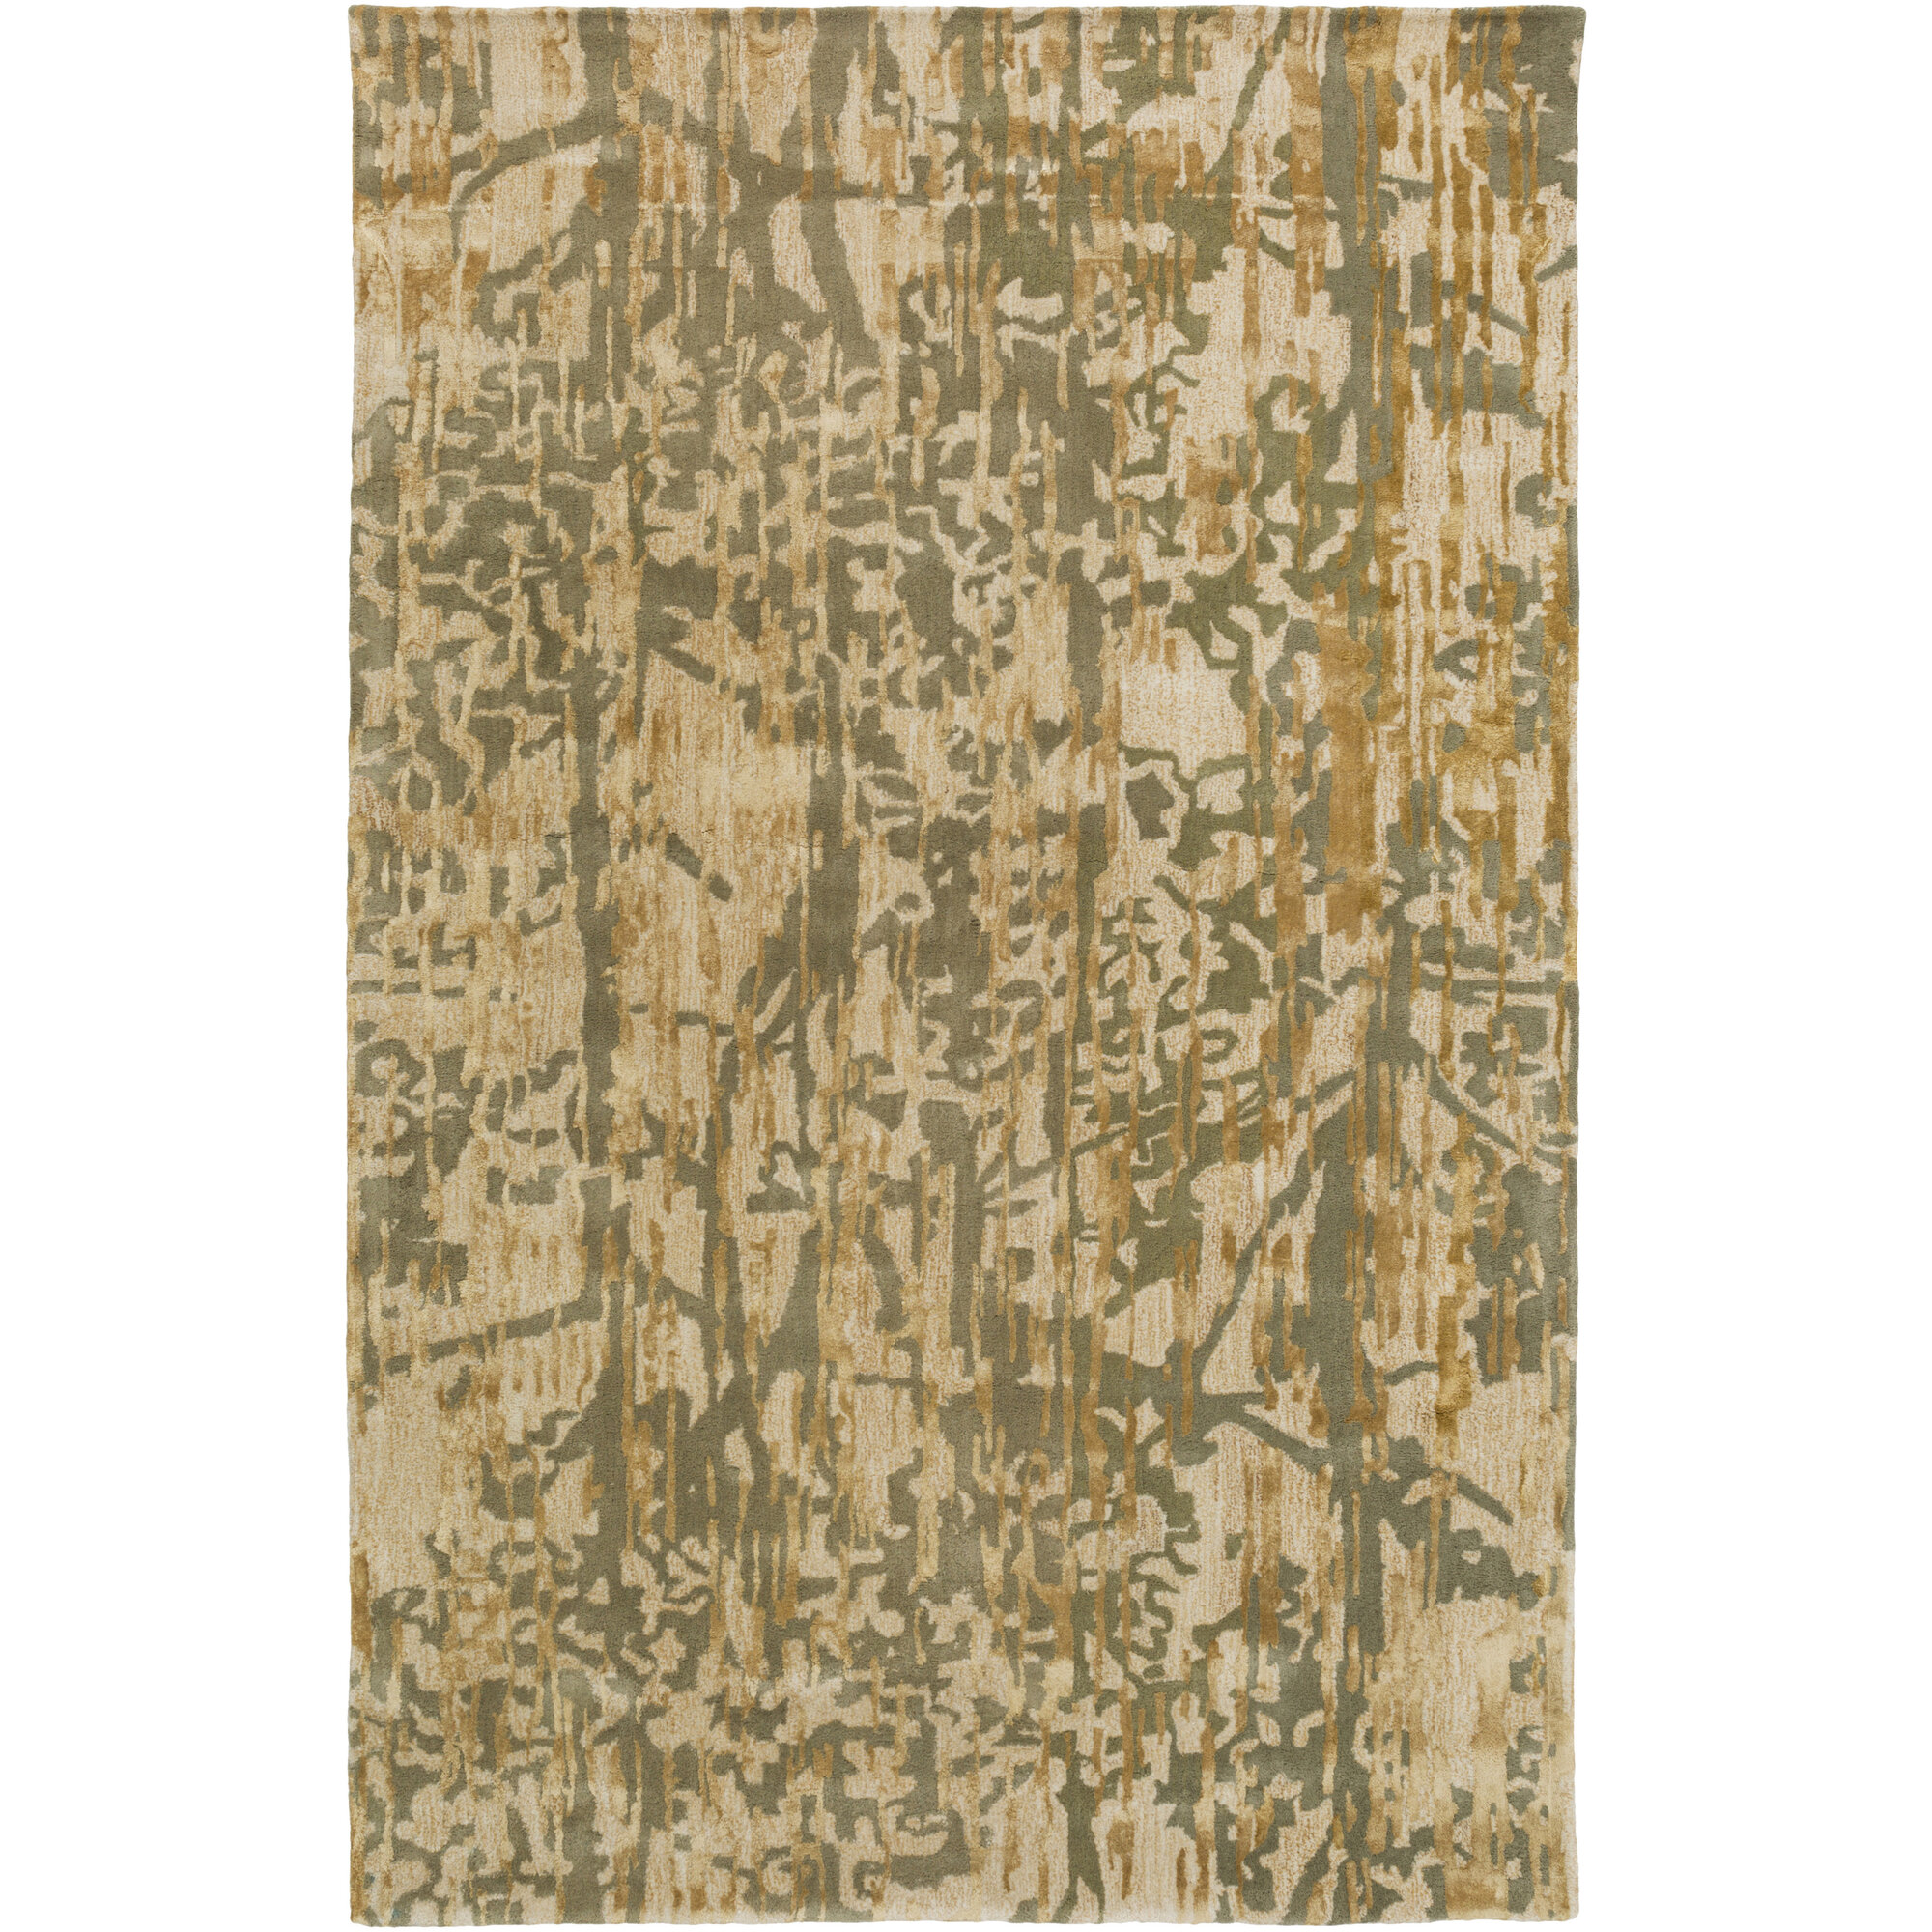 Candice Olson Rugs Zephyr Hand Tufted Green Brown Area Rug Ebay